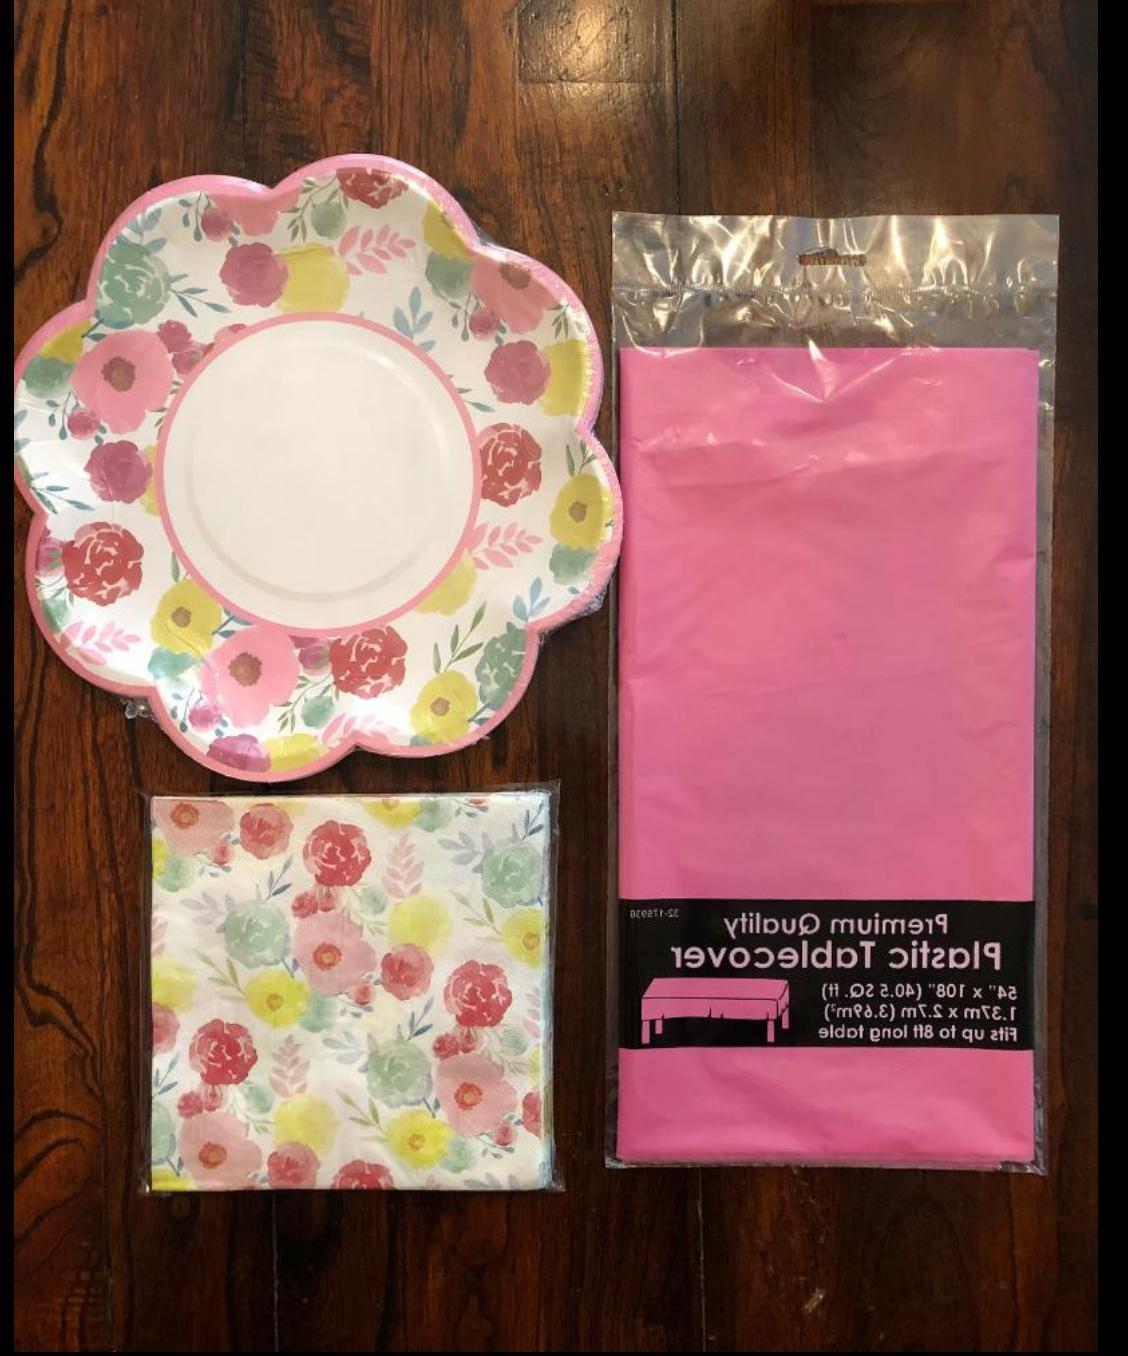 easter spring flowers teaparty table cover plates